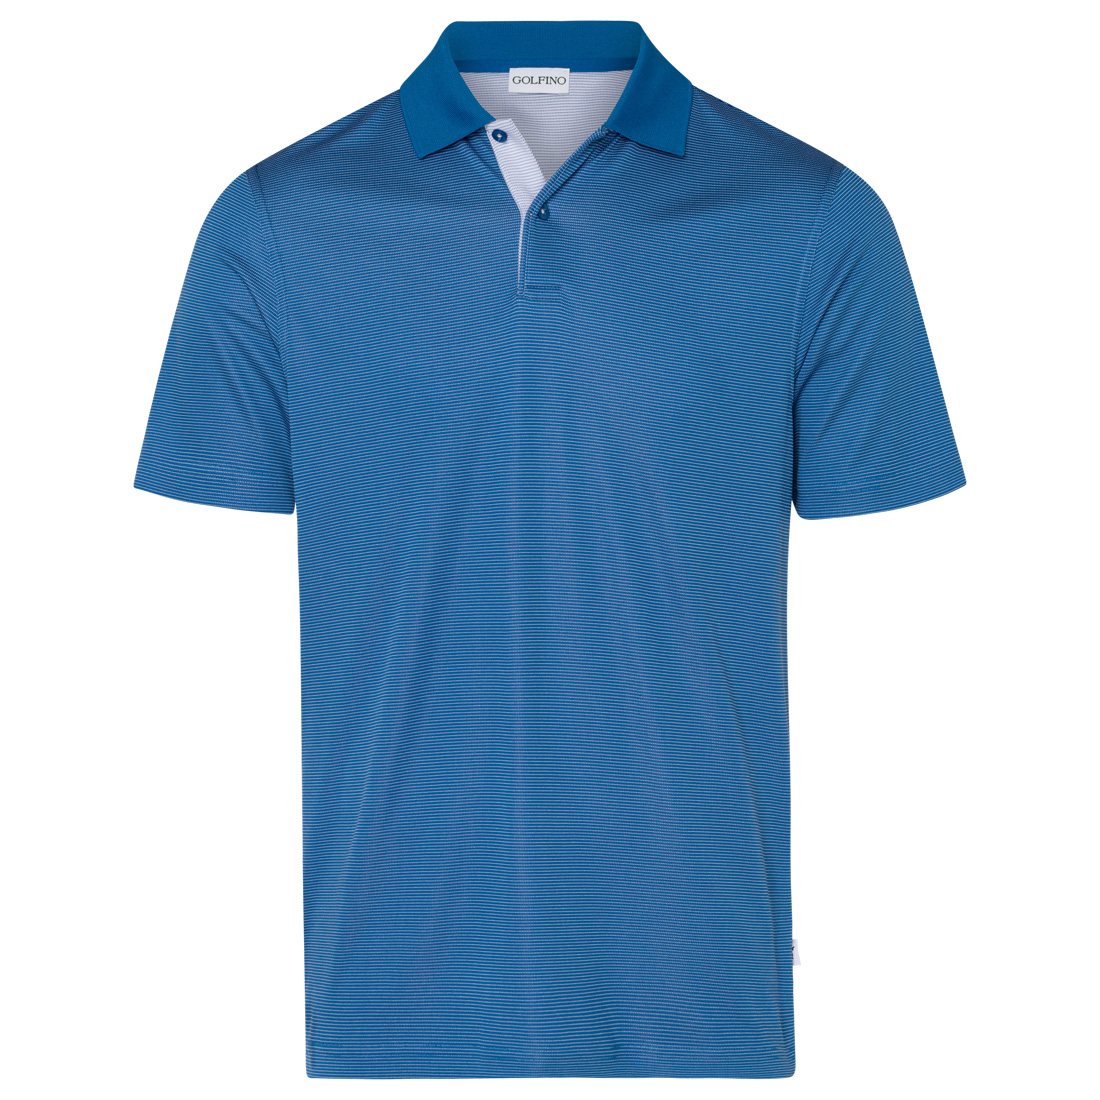 Interlock Technical Polo